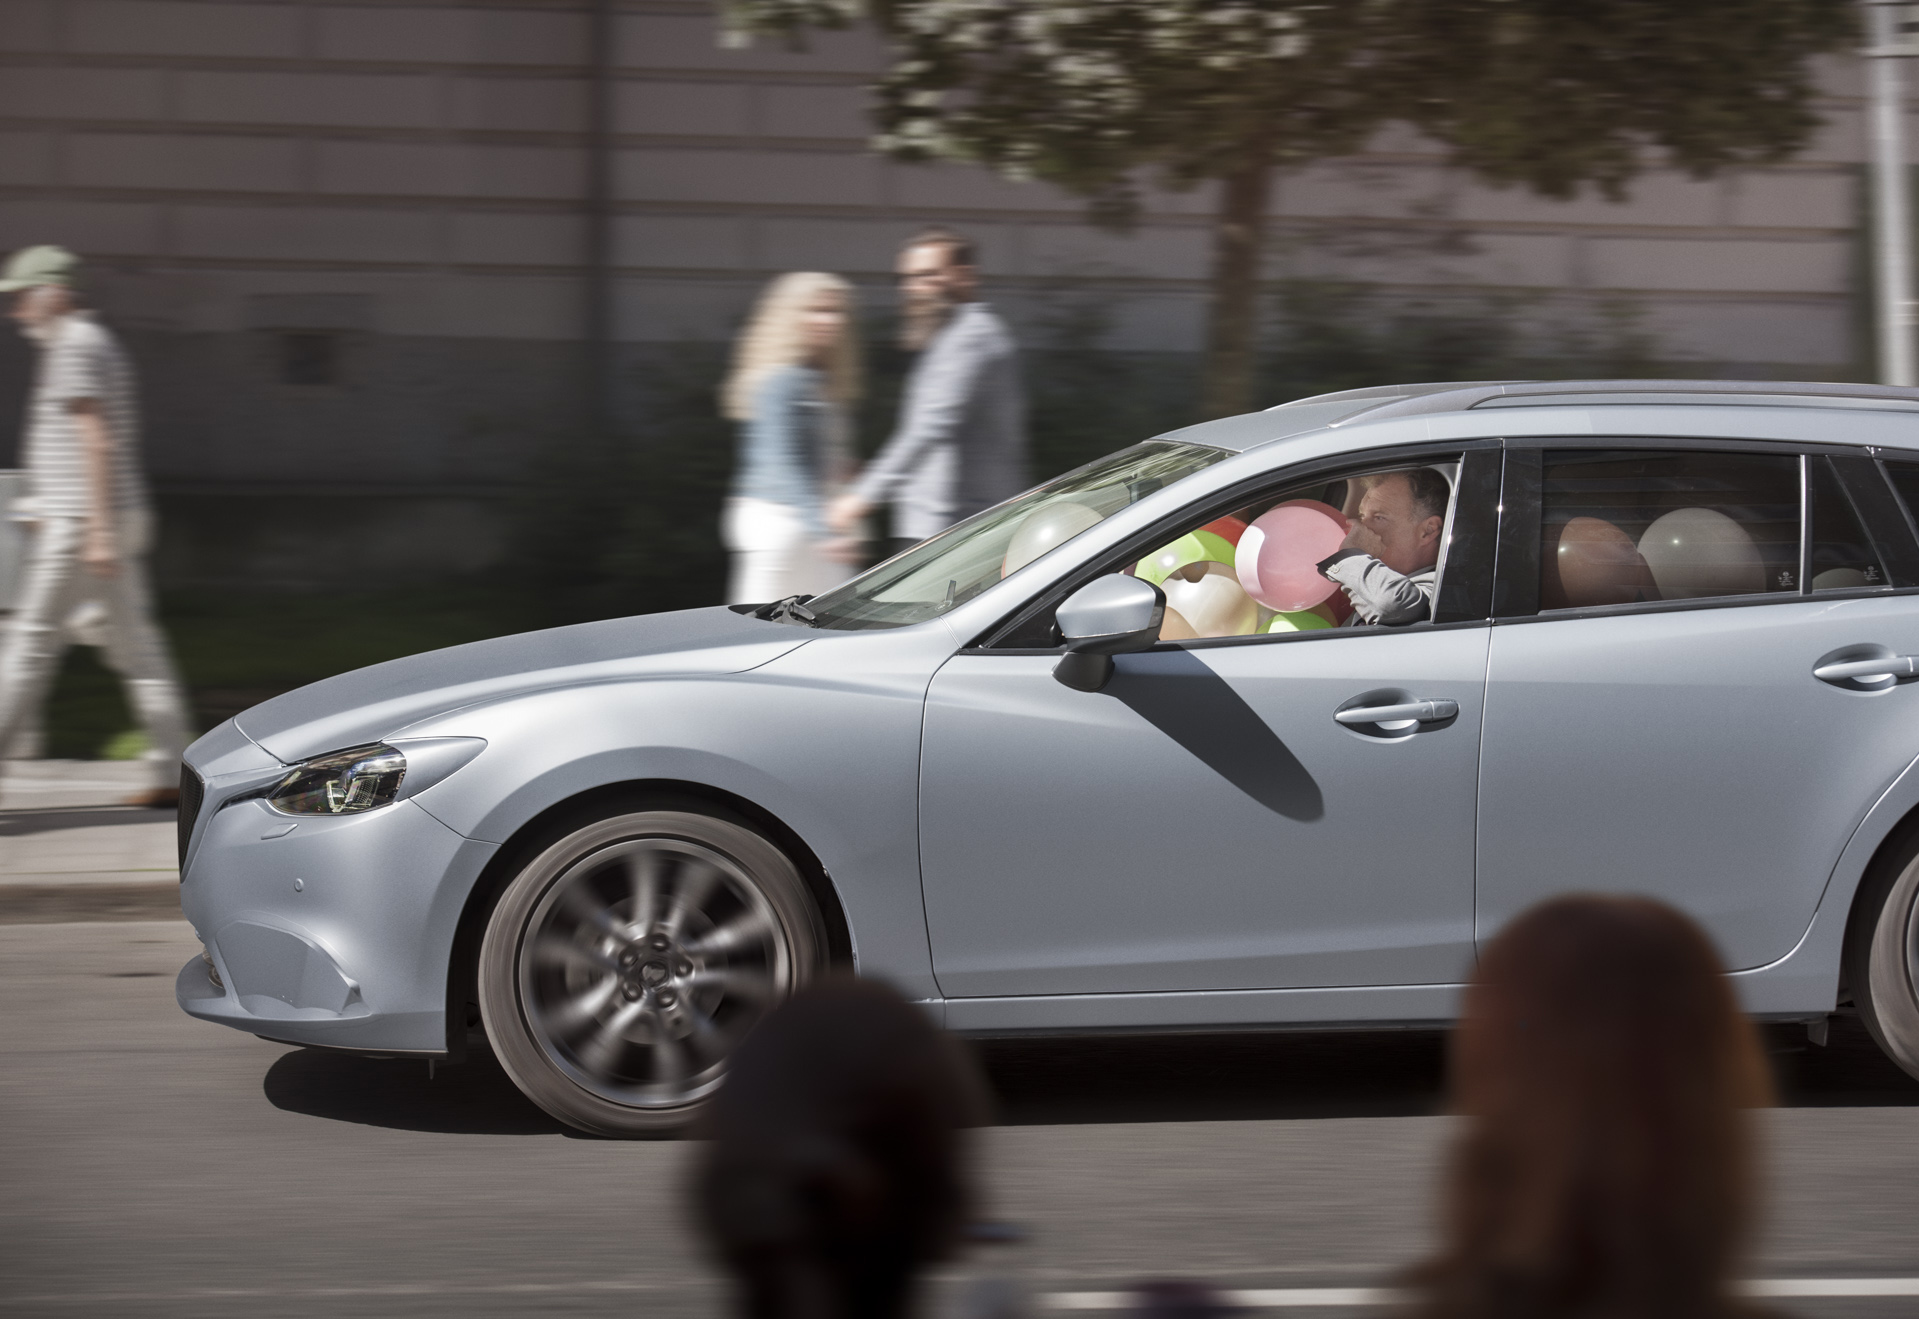 08 - When there is no person driving the car, how does it communicate with its surroundings_ The Smiling Car Semcon.jpg